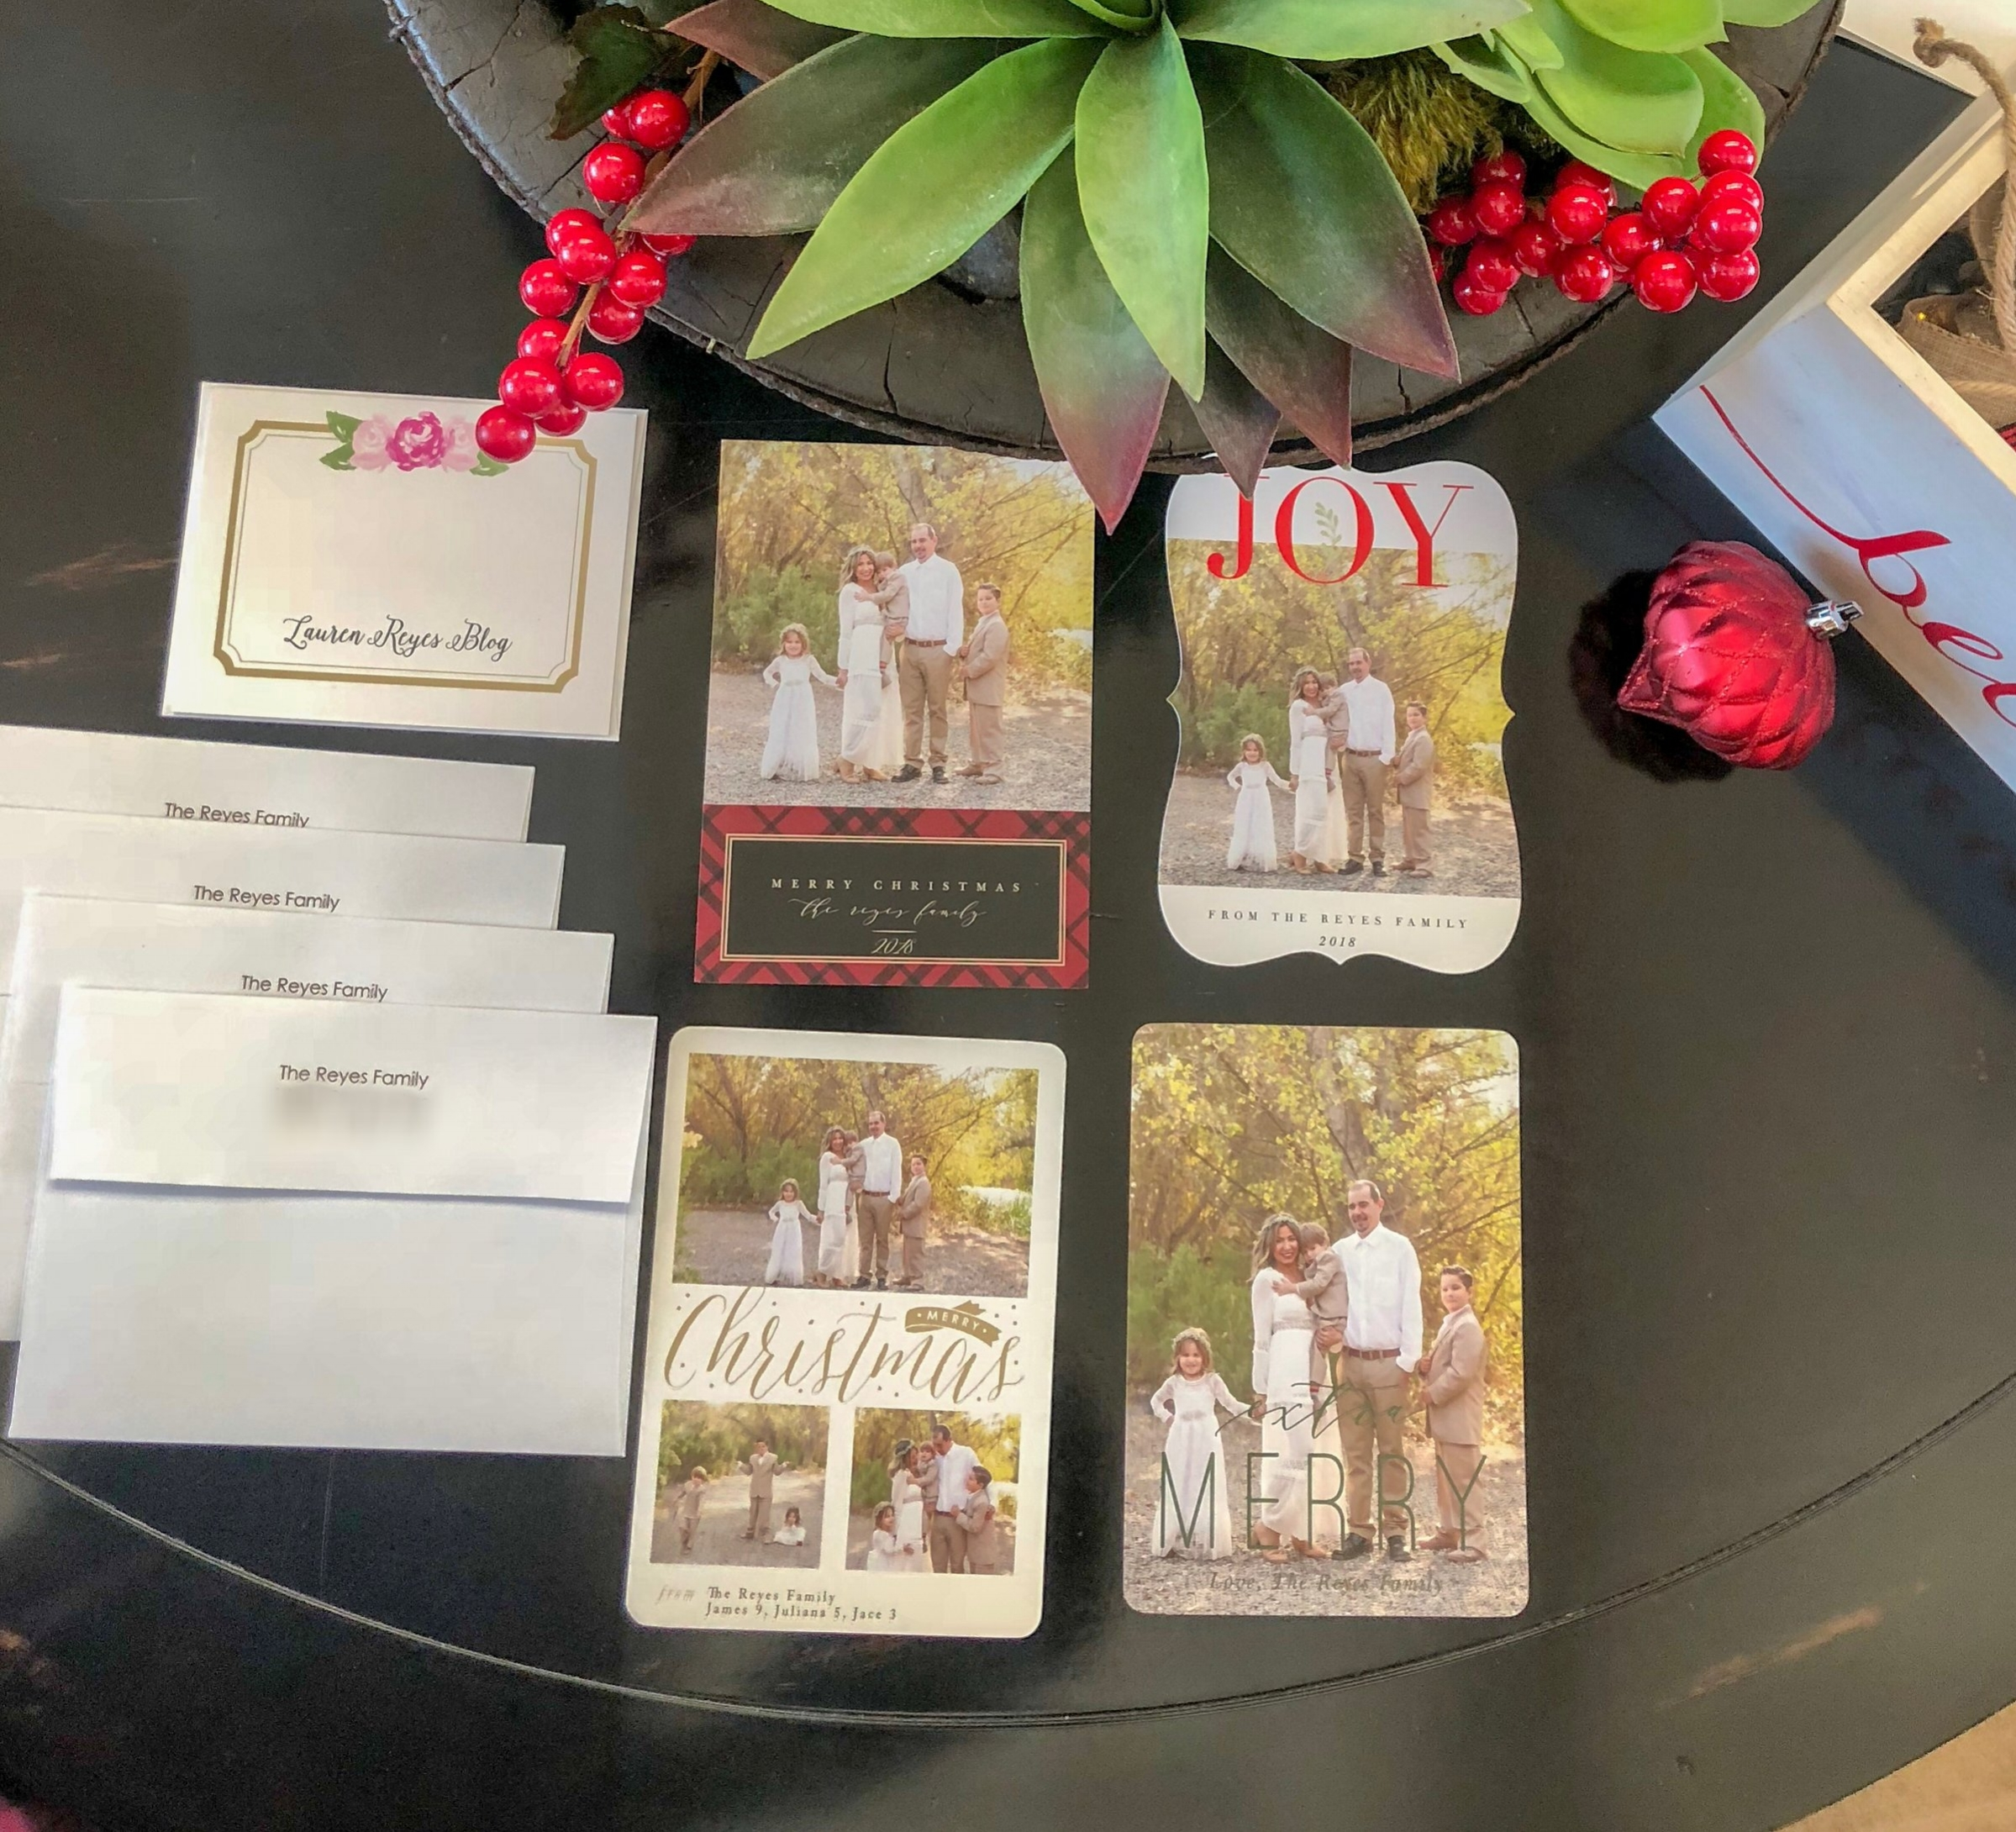 Help us decide which Christmas card to go with! Tell me in the comments below!